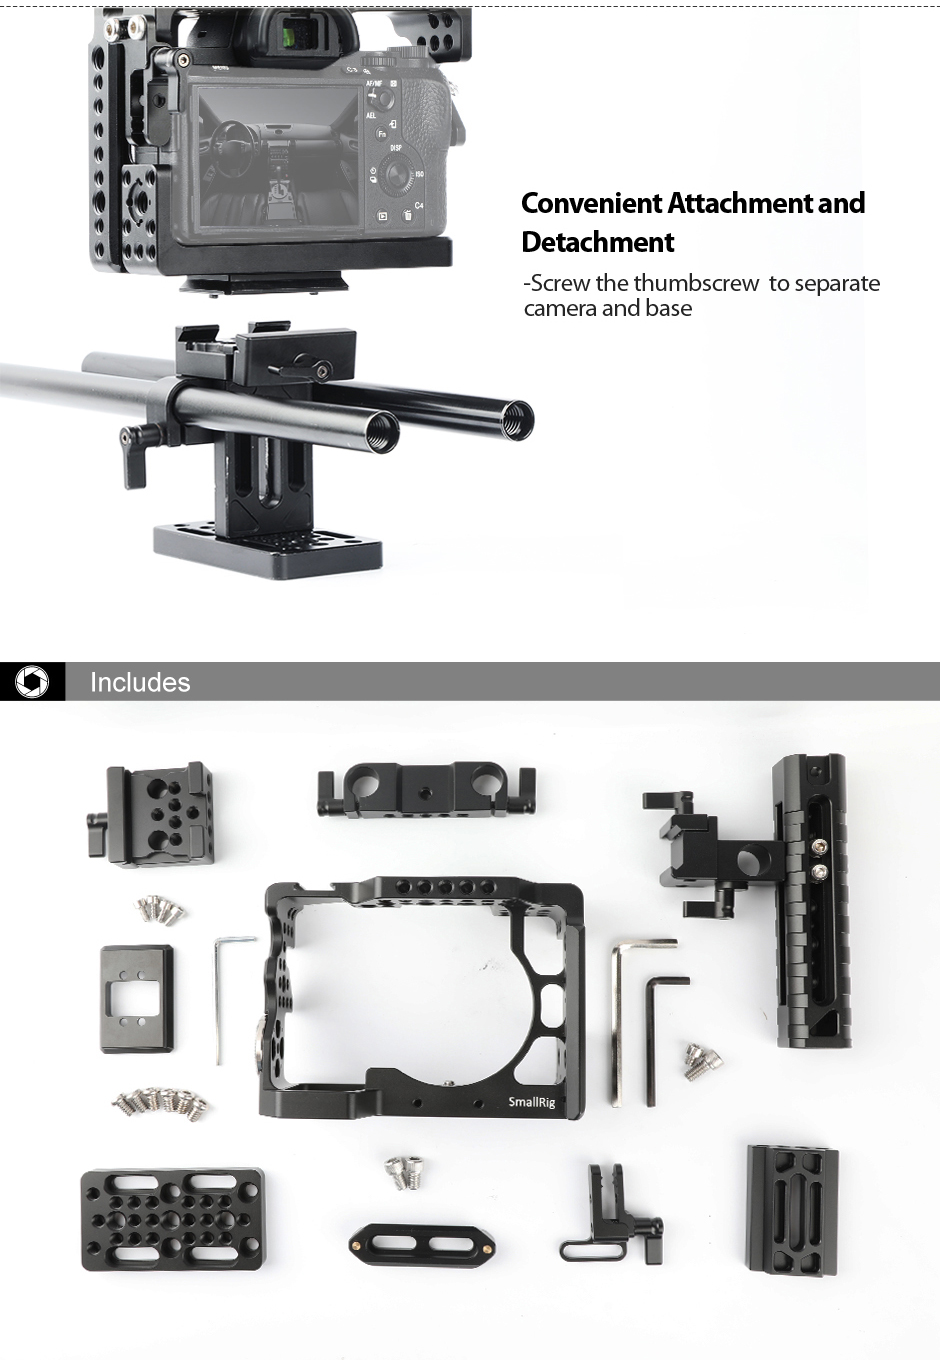 smallrig-sony-a7ii-a7rii-a7sii-accessory-kit-201-90-.jpg